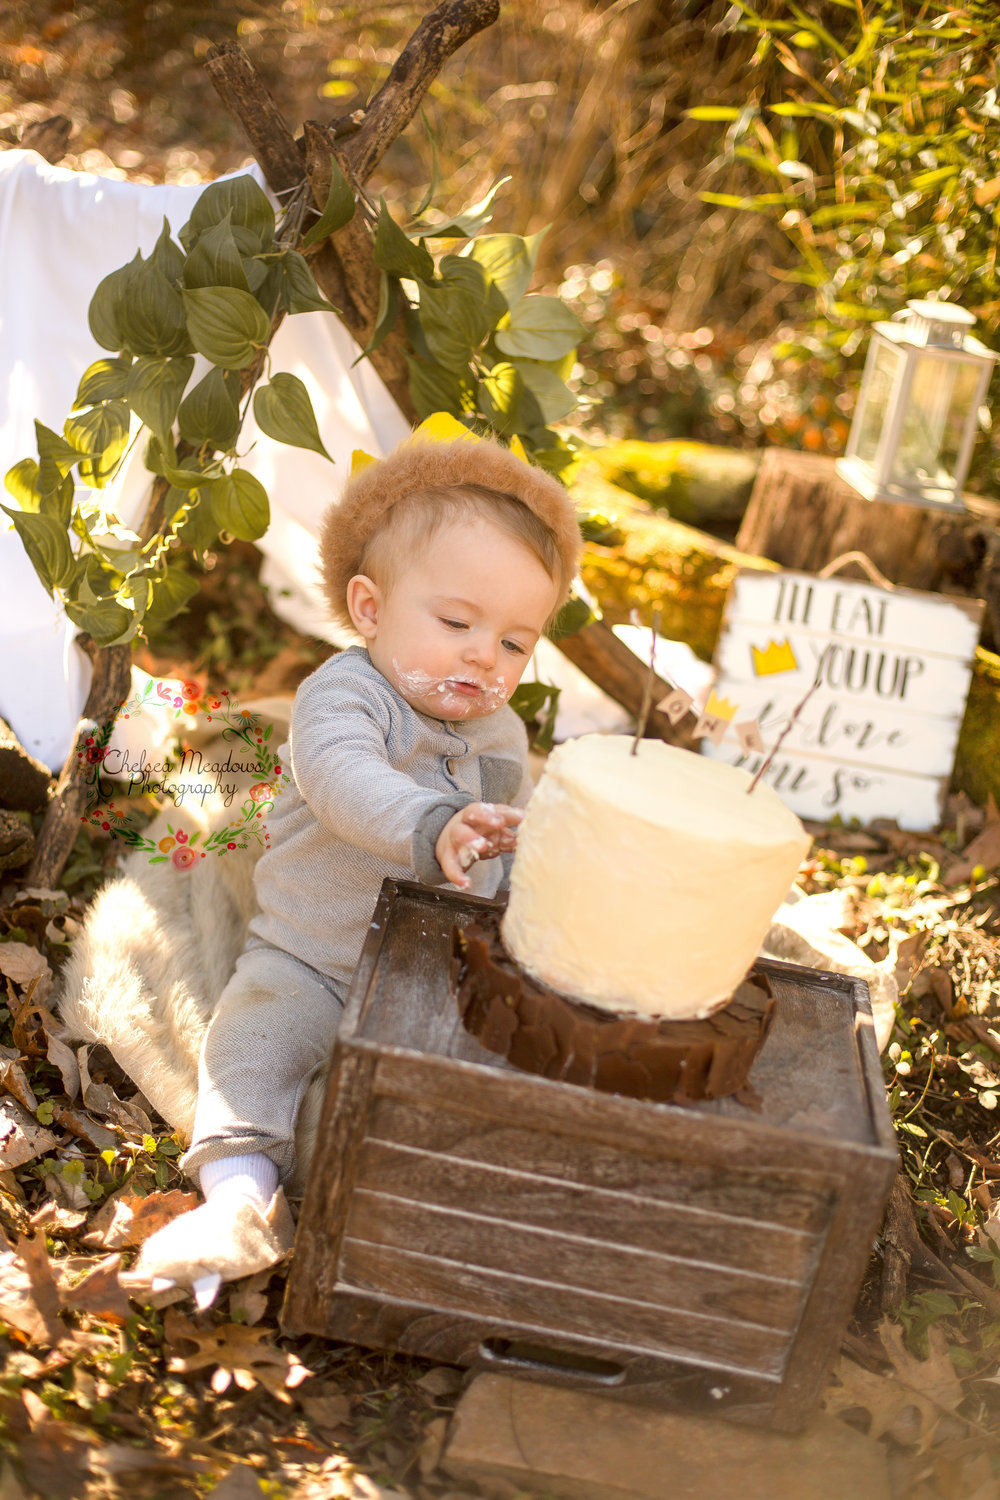 Matteo First Birthday Cake Smash - Nashville Family Photographer - Chelsea Meadows Photography (22).jpg